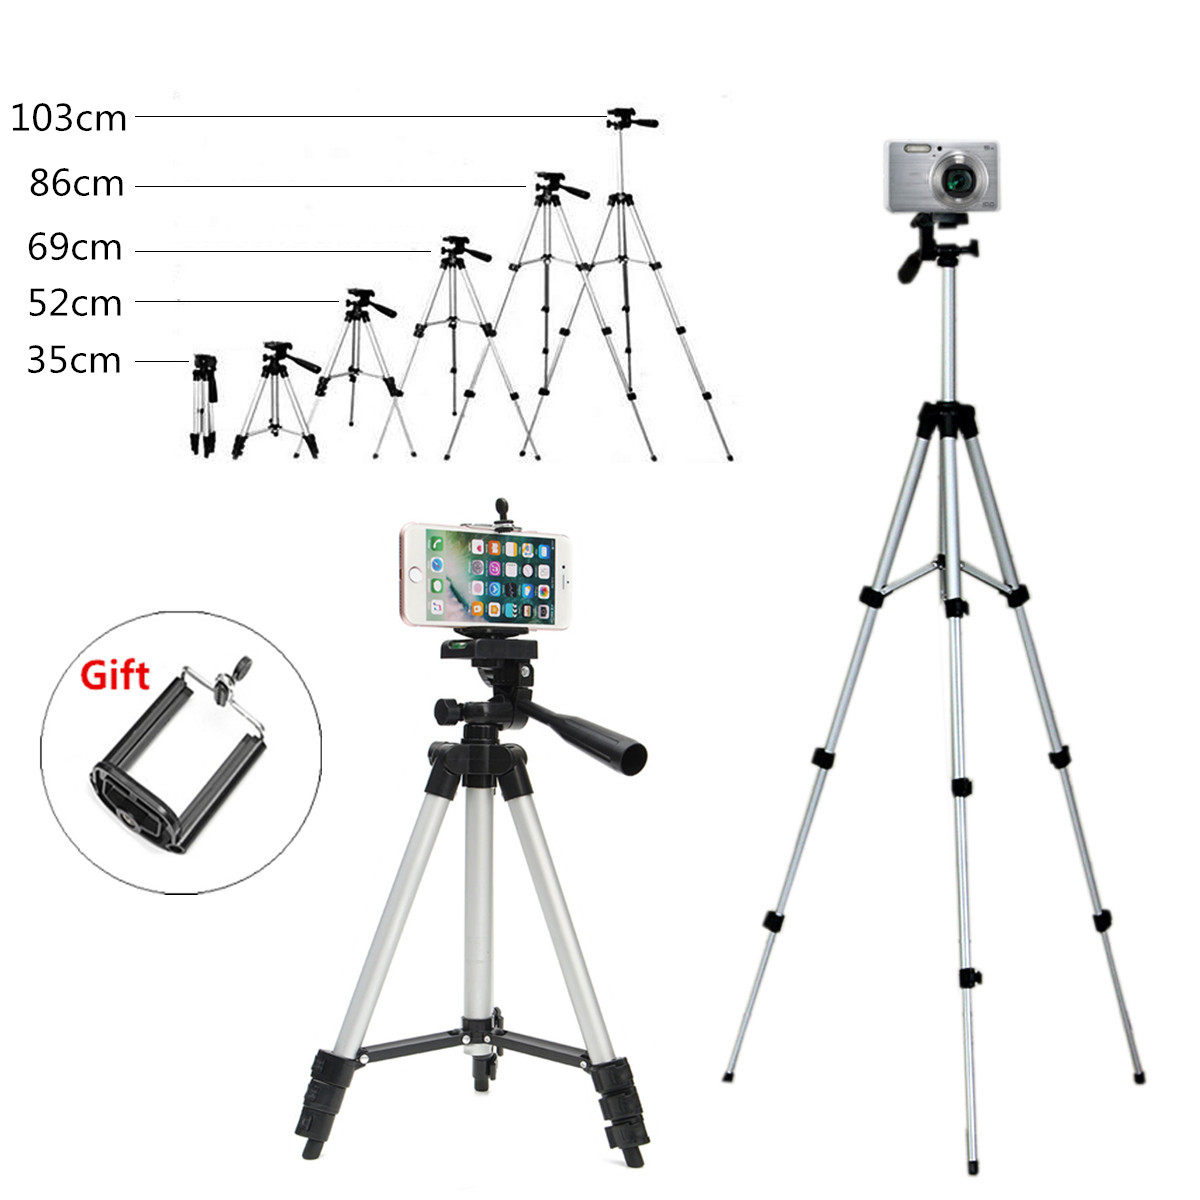 Universal Portable Tripod 350-1030mm 360 Rotation +Phone Holder For Smartphone For Canon For Sony For Nikon Compact Camera